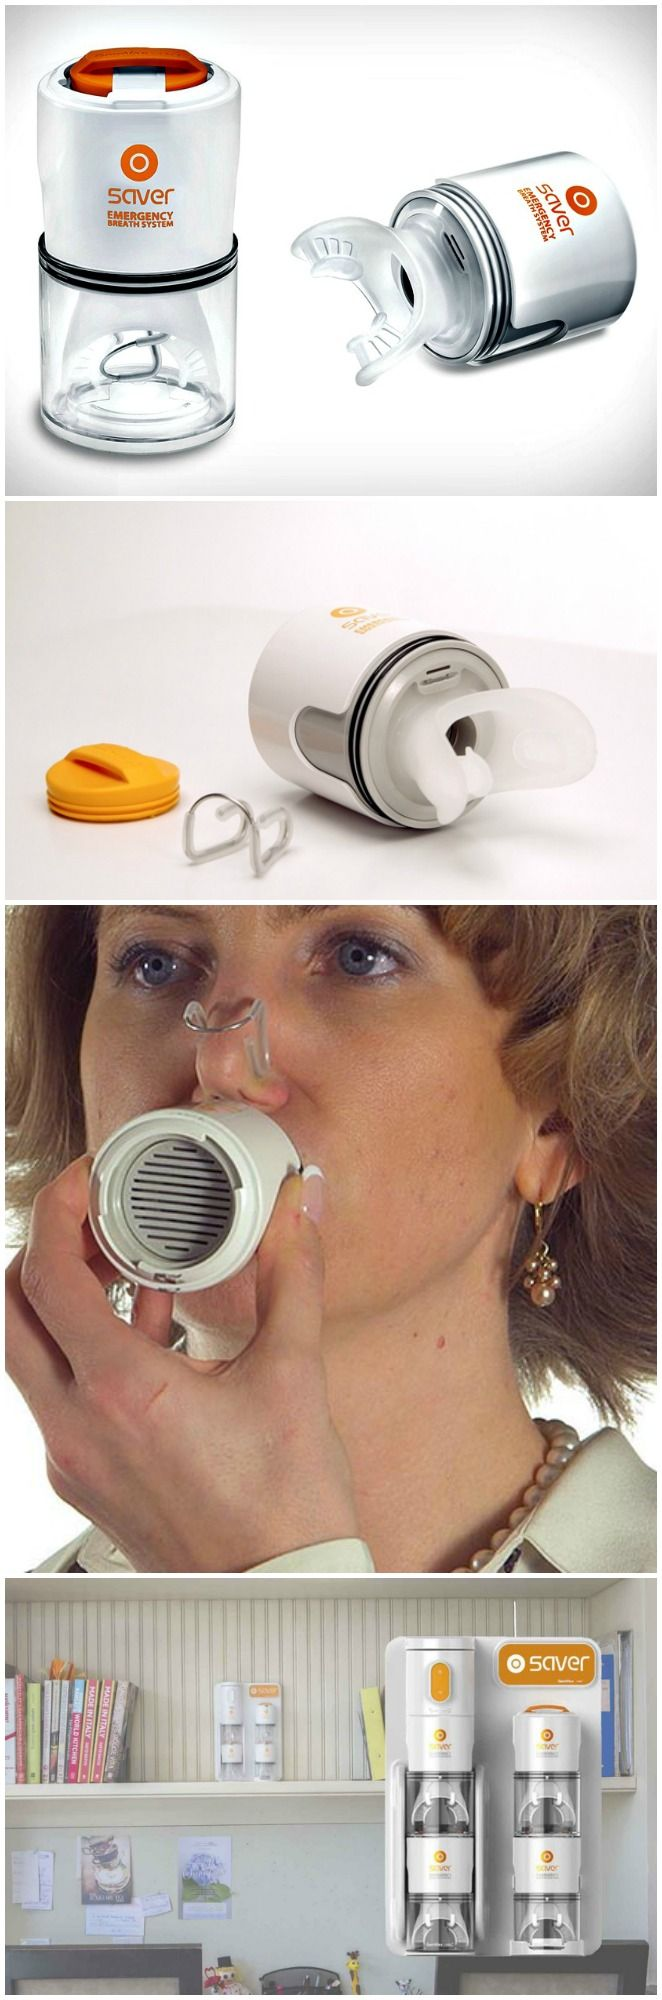 tech - New - Saver Emergency Breath System May Save Lives in the Event of a Fire